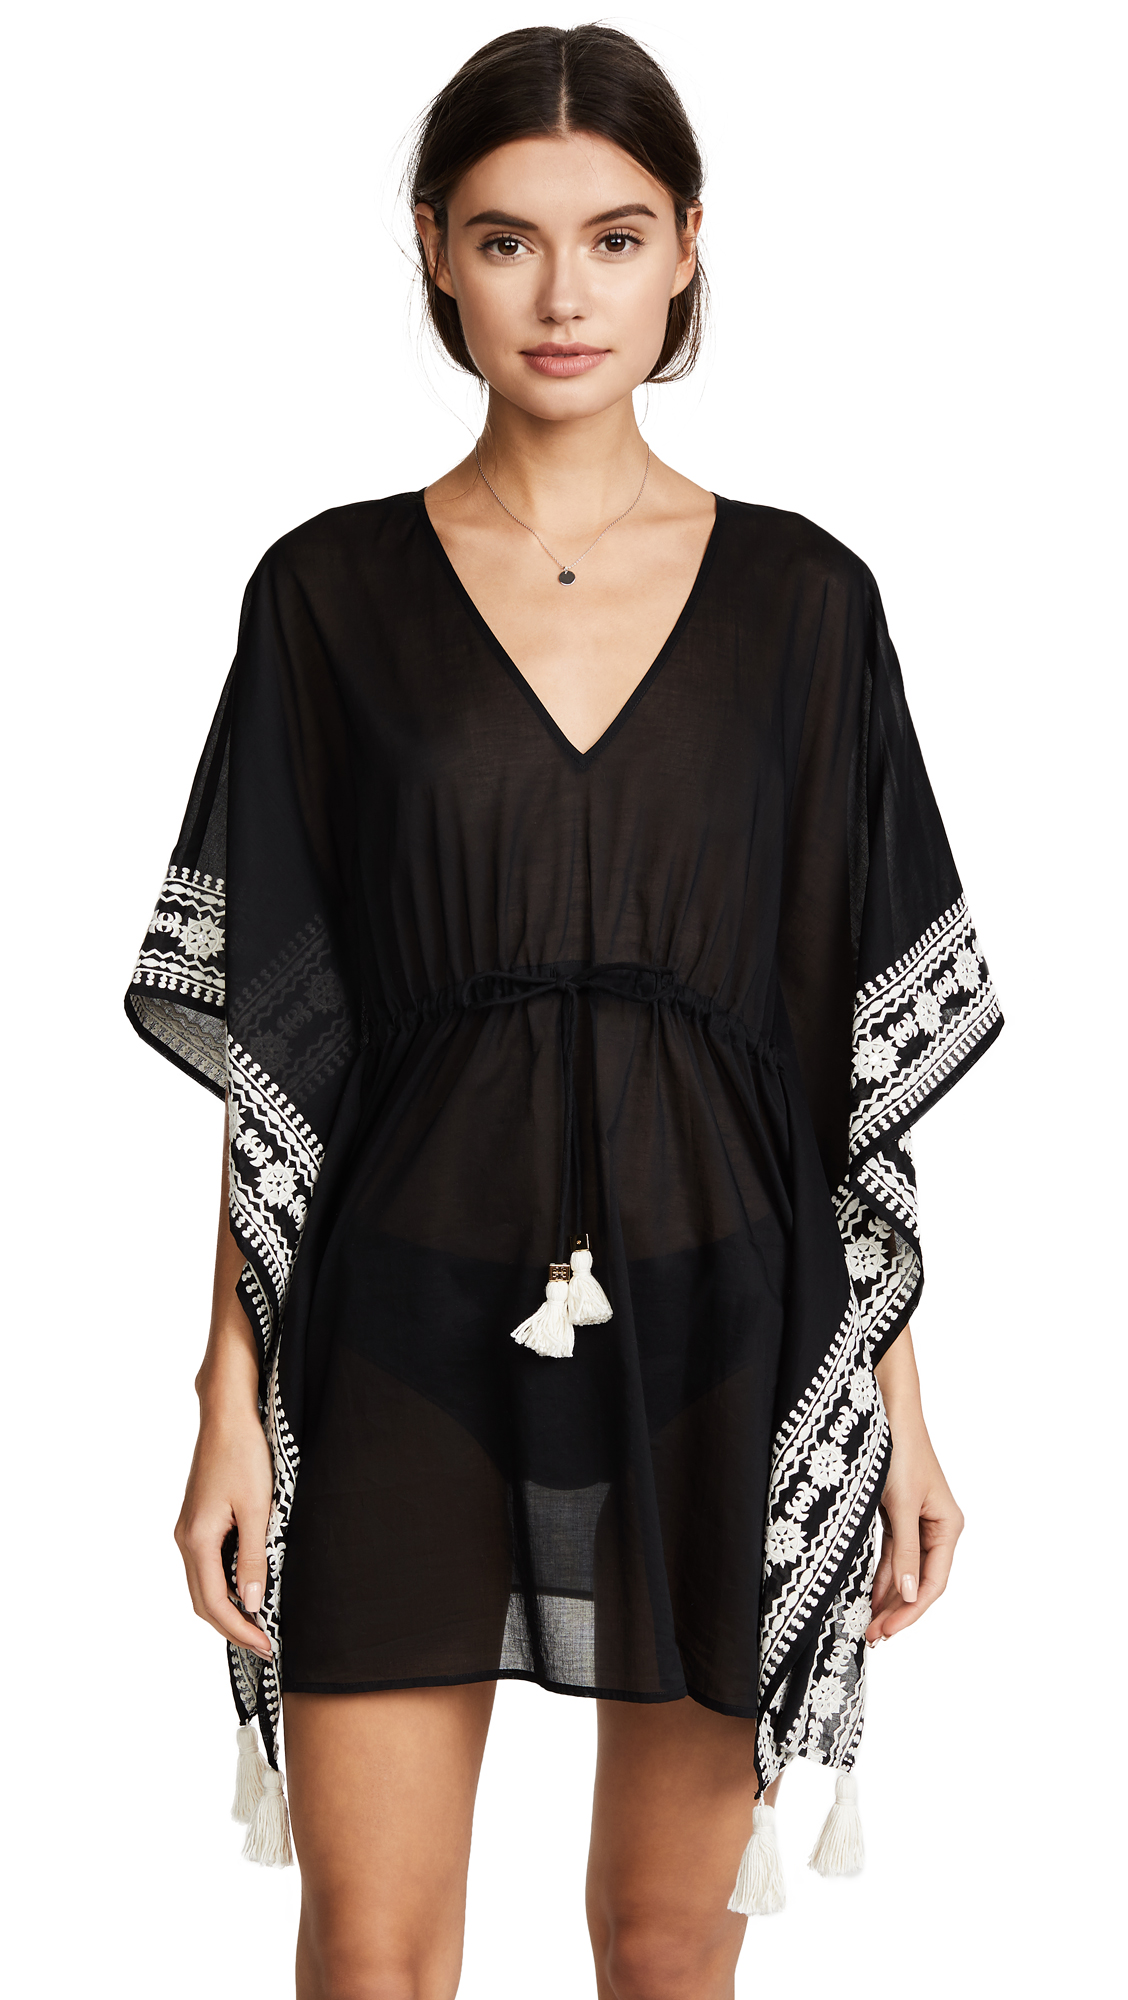 Tory Burch Embroidered Short Caftan - Black